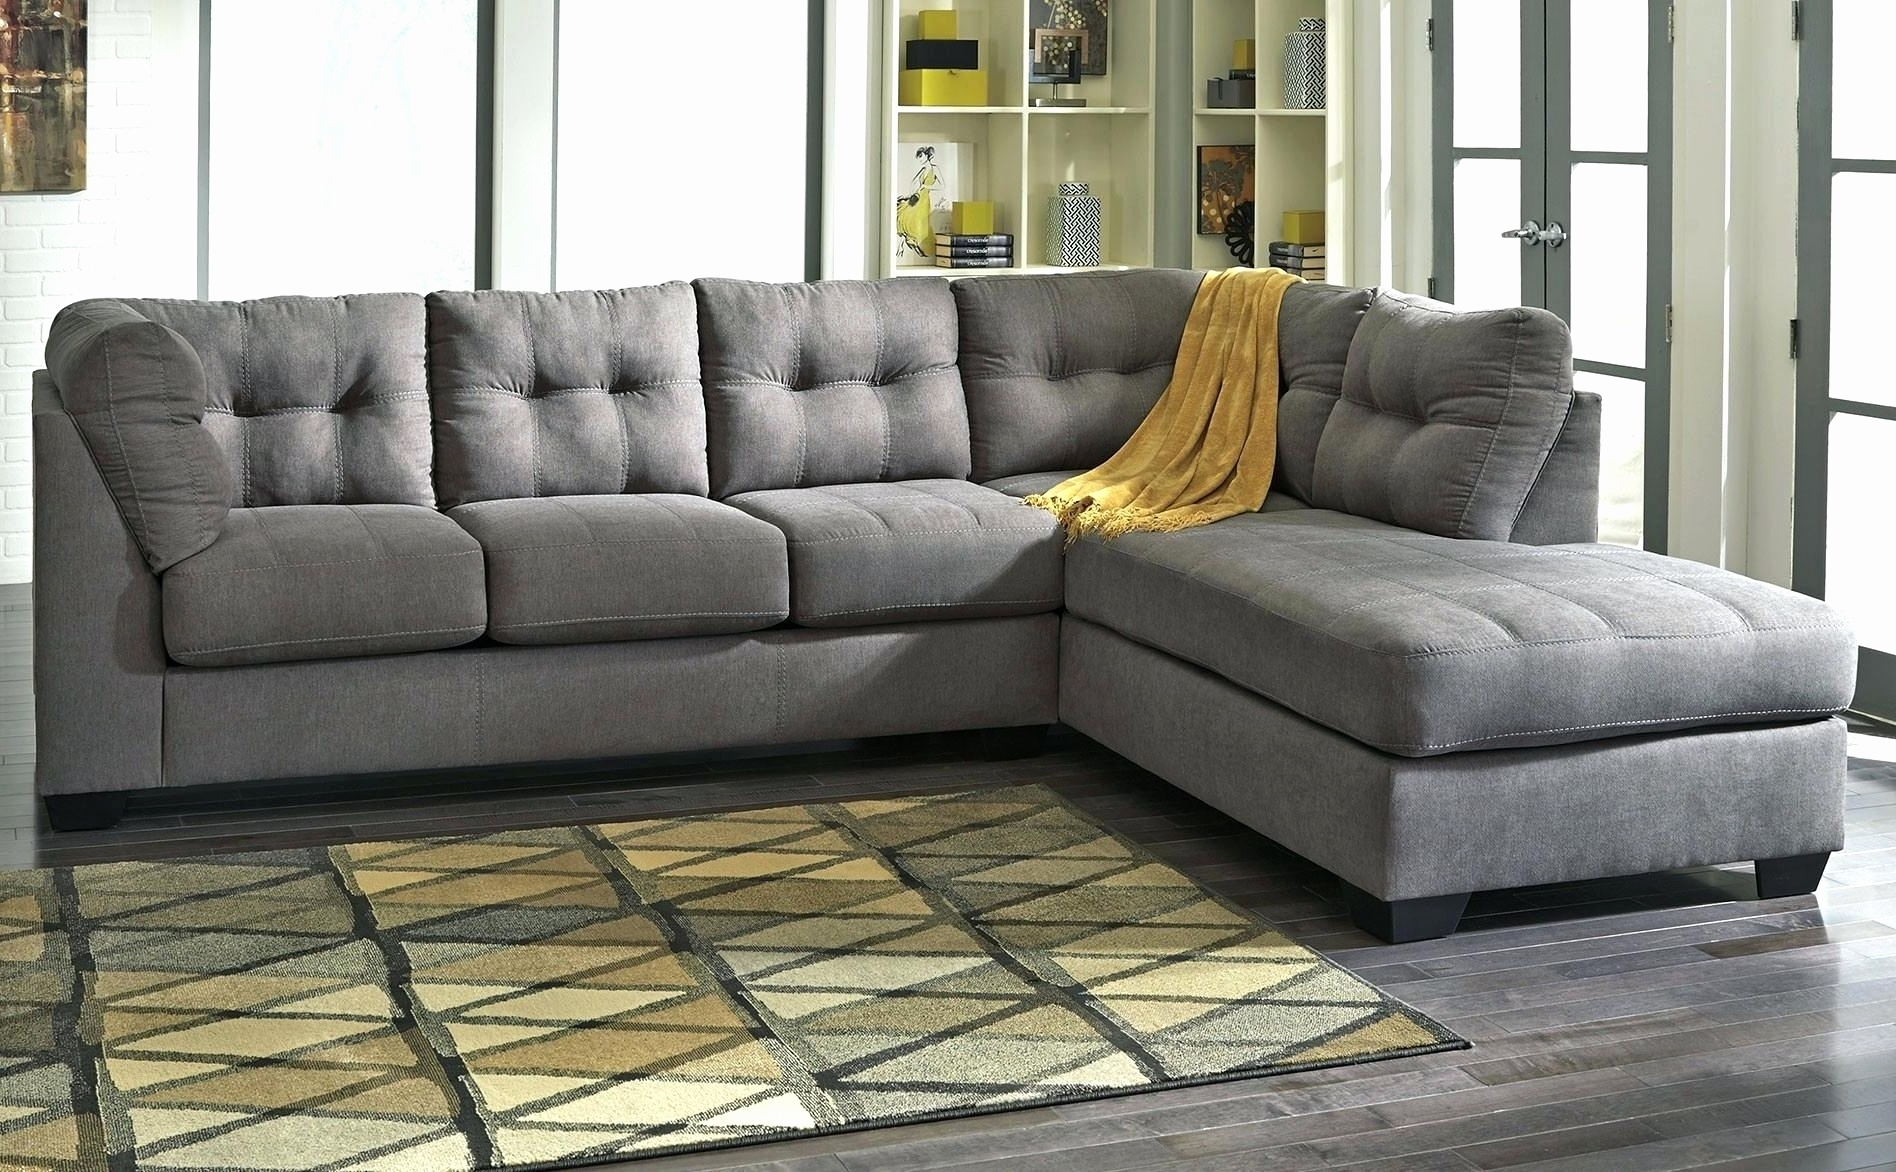 Fresh Grey Velvet Sectional Sofa 2018 – Couches And Sofas Ideas Within Famous Velvet Sectional Sofas With Chaise (View 4 of 15)